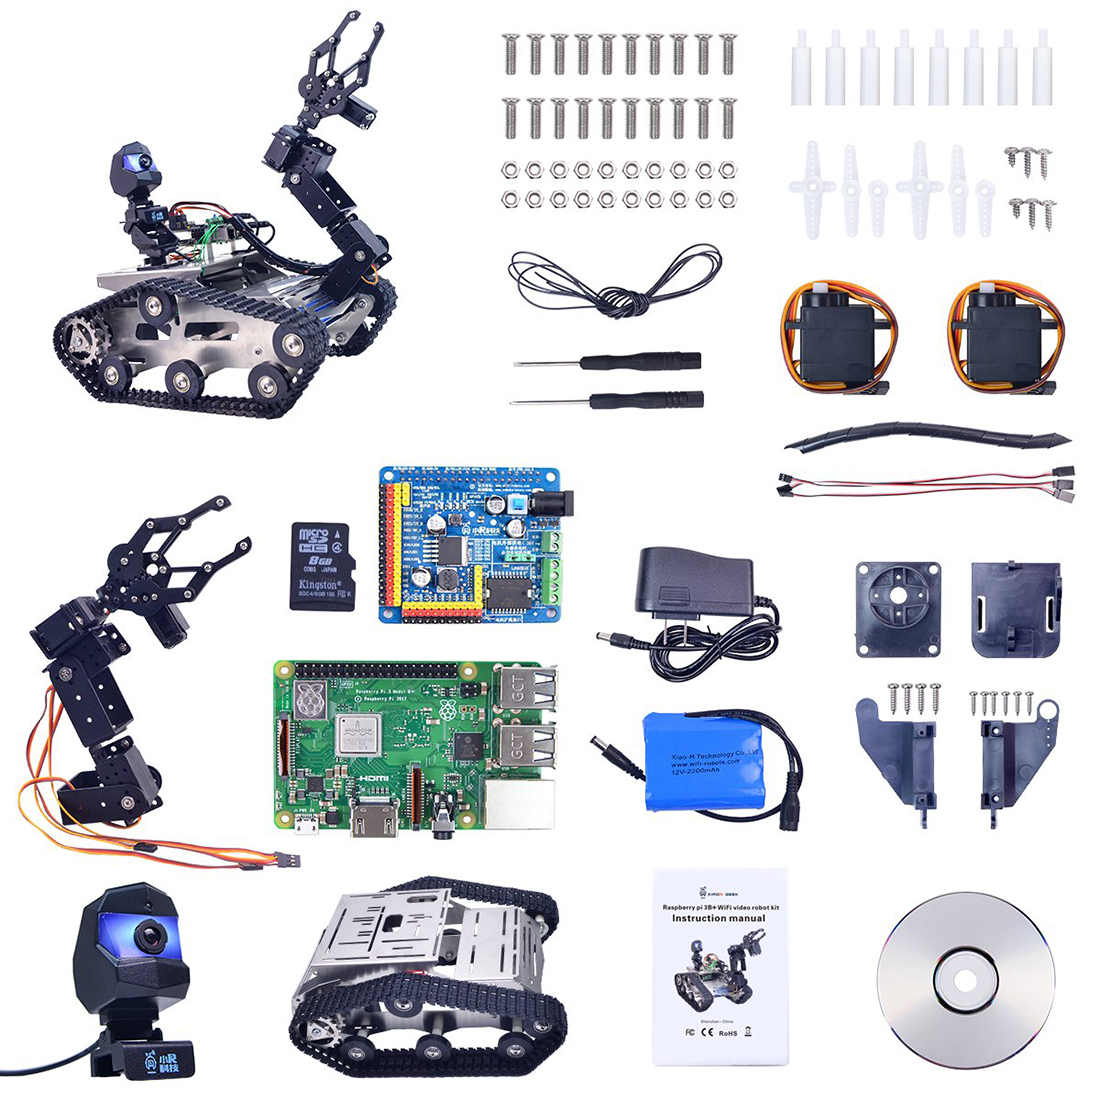 Programmable TH WiFi FPV Tank Robot Car Kit With Arm For Kids Adult For Raspberry Pi 3B+ - Standard Version Small Claw